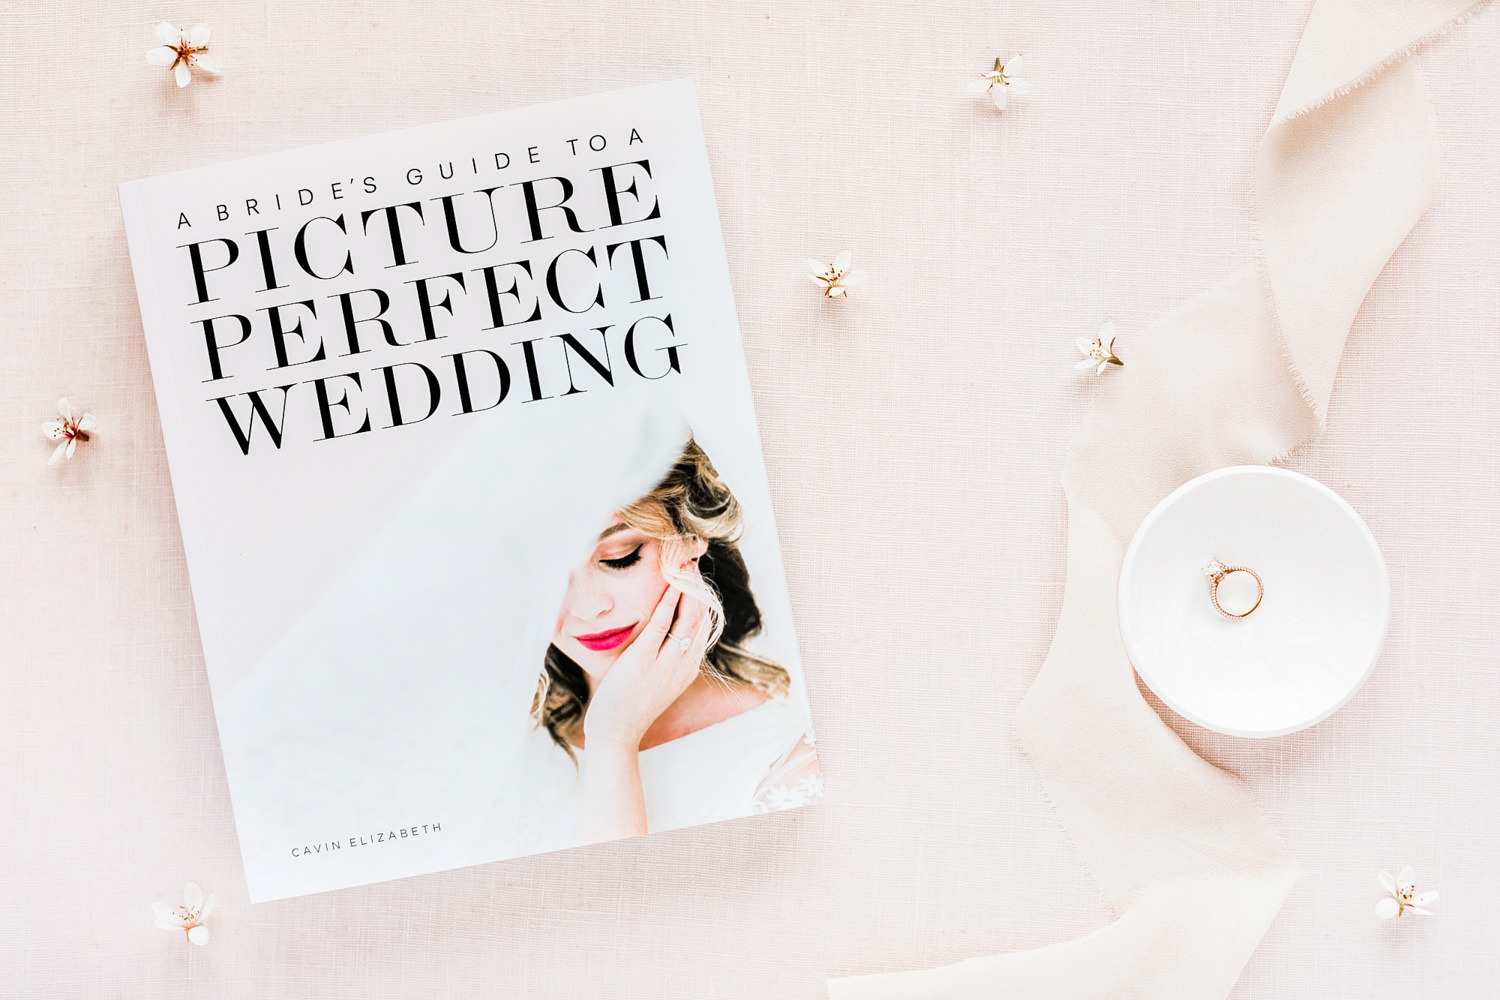 A Bride's Guide to a Picture Perfect Wedding, Wedding planning book for brides